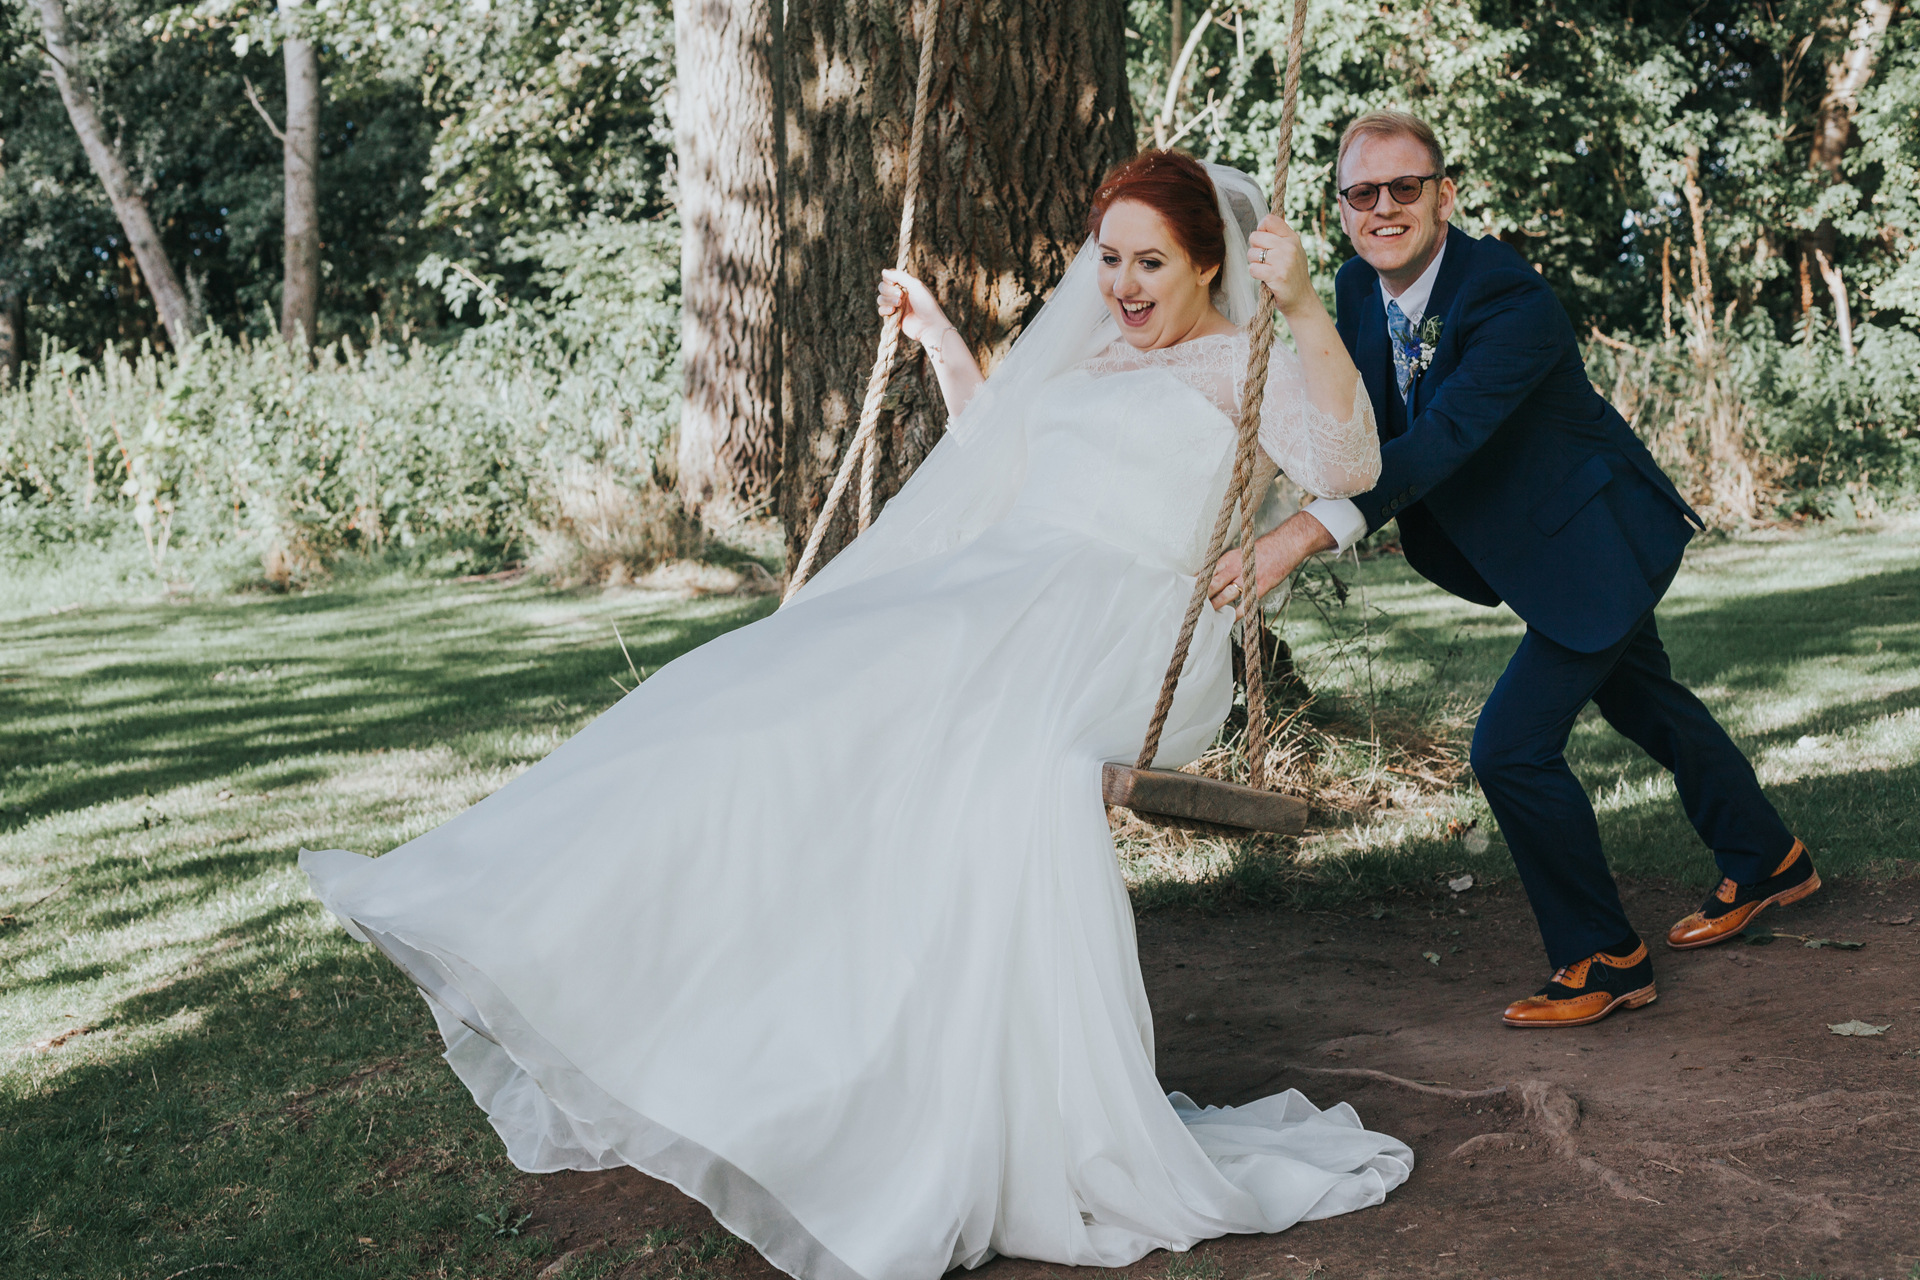 Groom pushes bride on swing at Trafford hall.